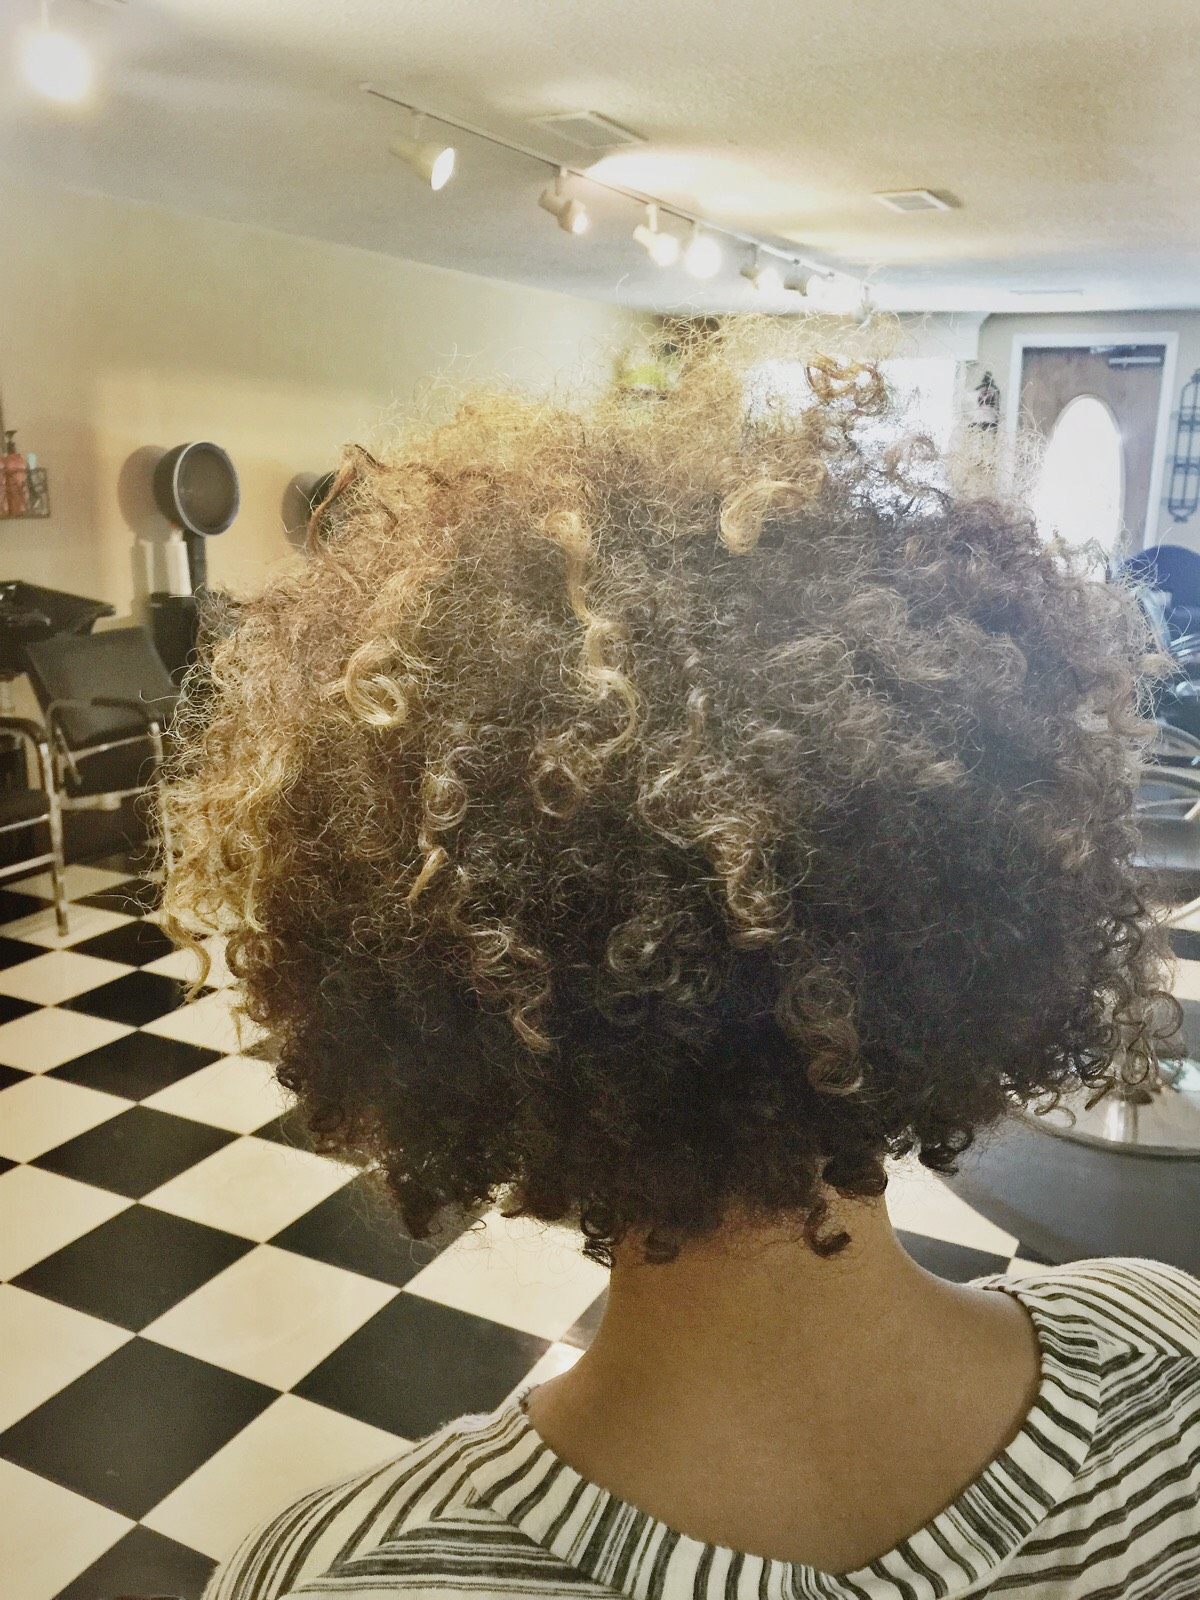 Image of hair prior to using the Devacurl SuperCream Coconut Curl Styler from the Curl Connoisseur Blog